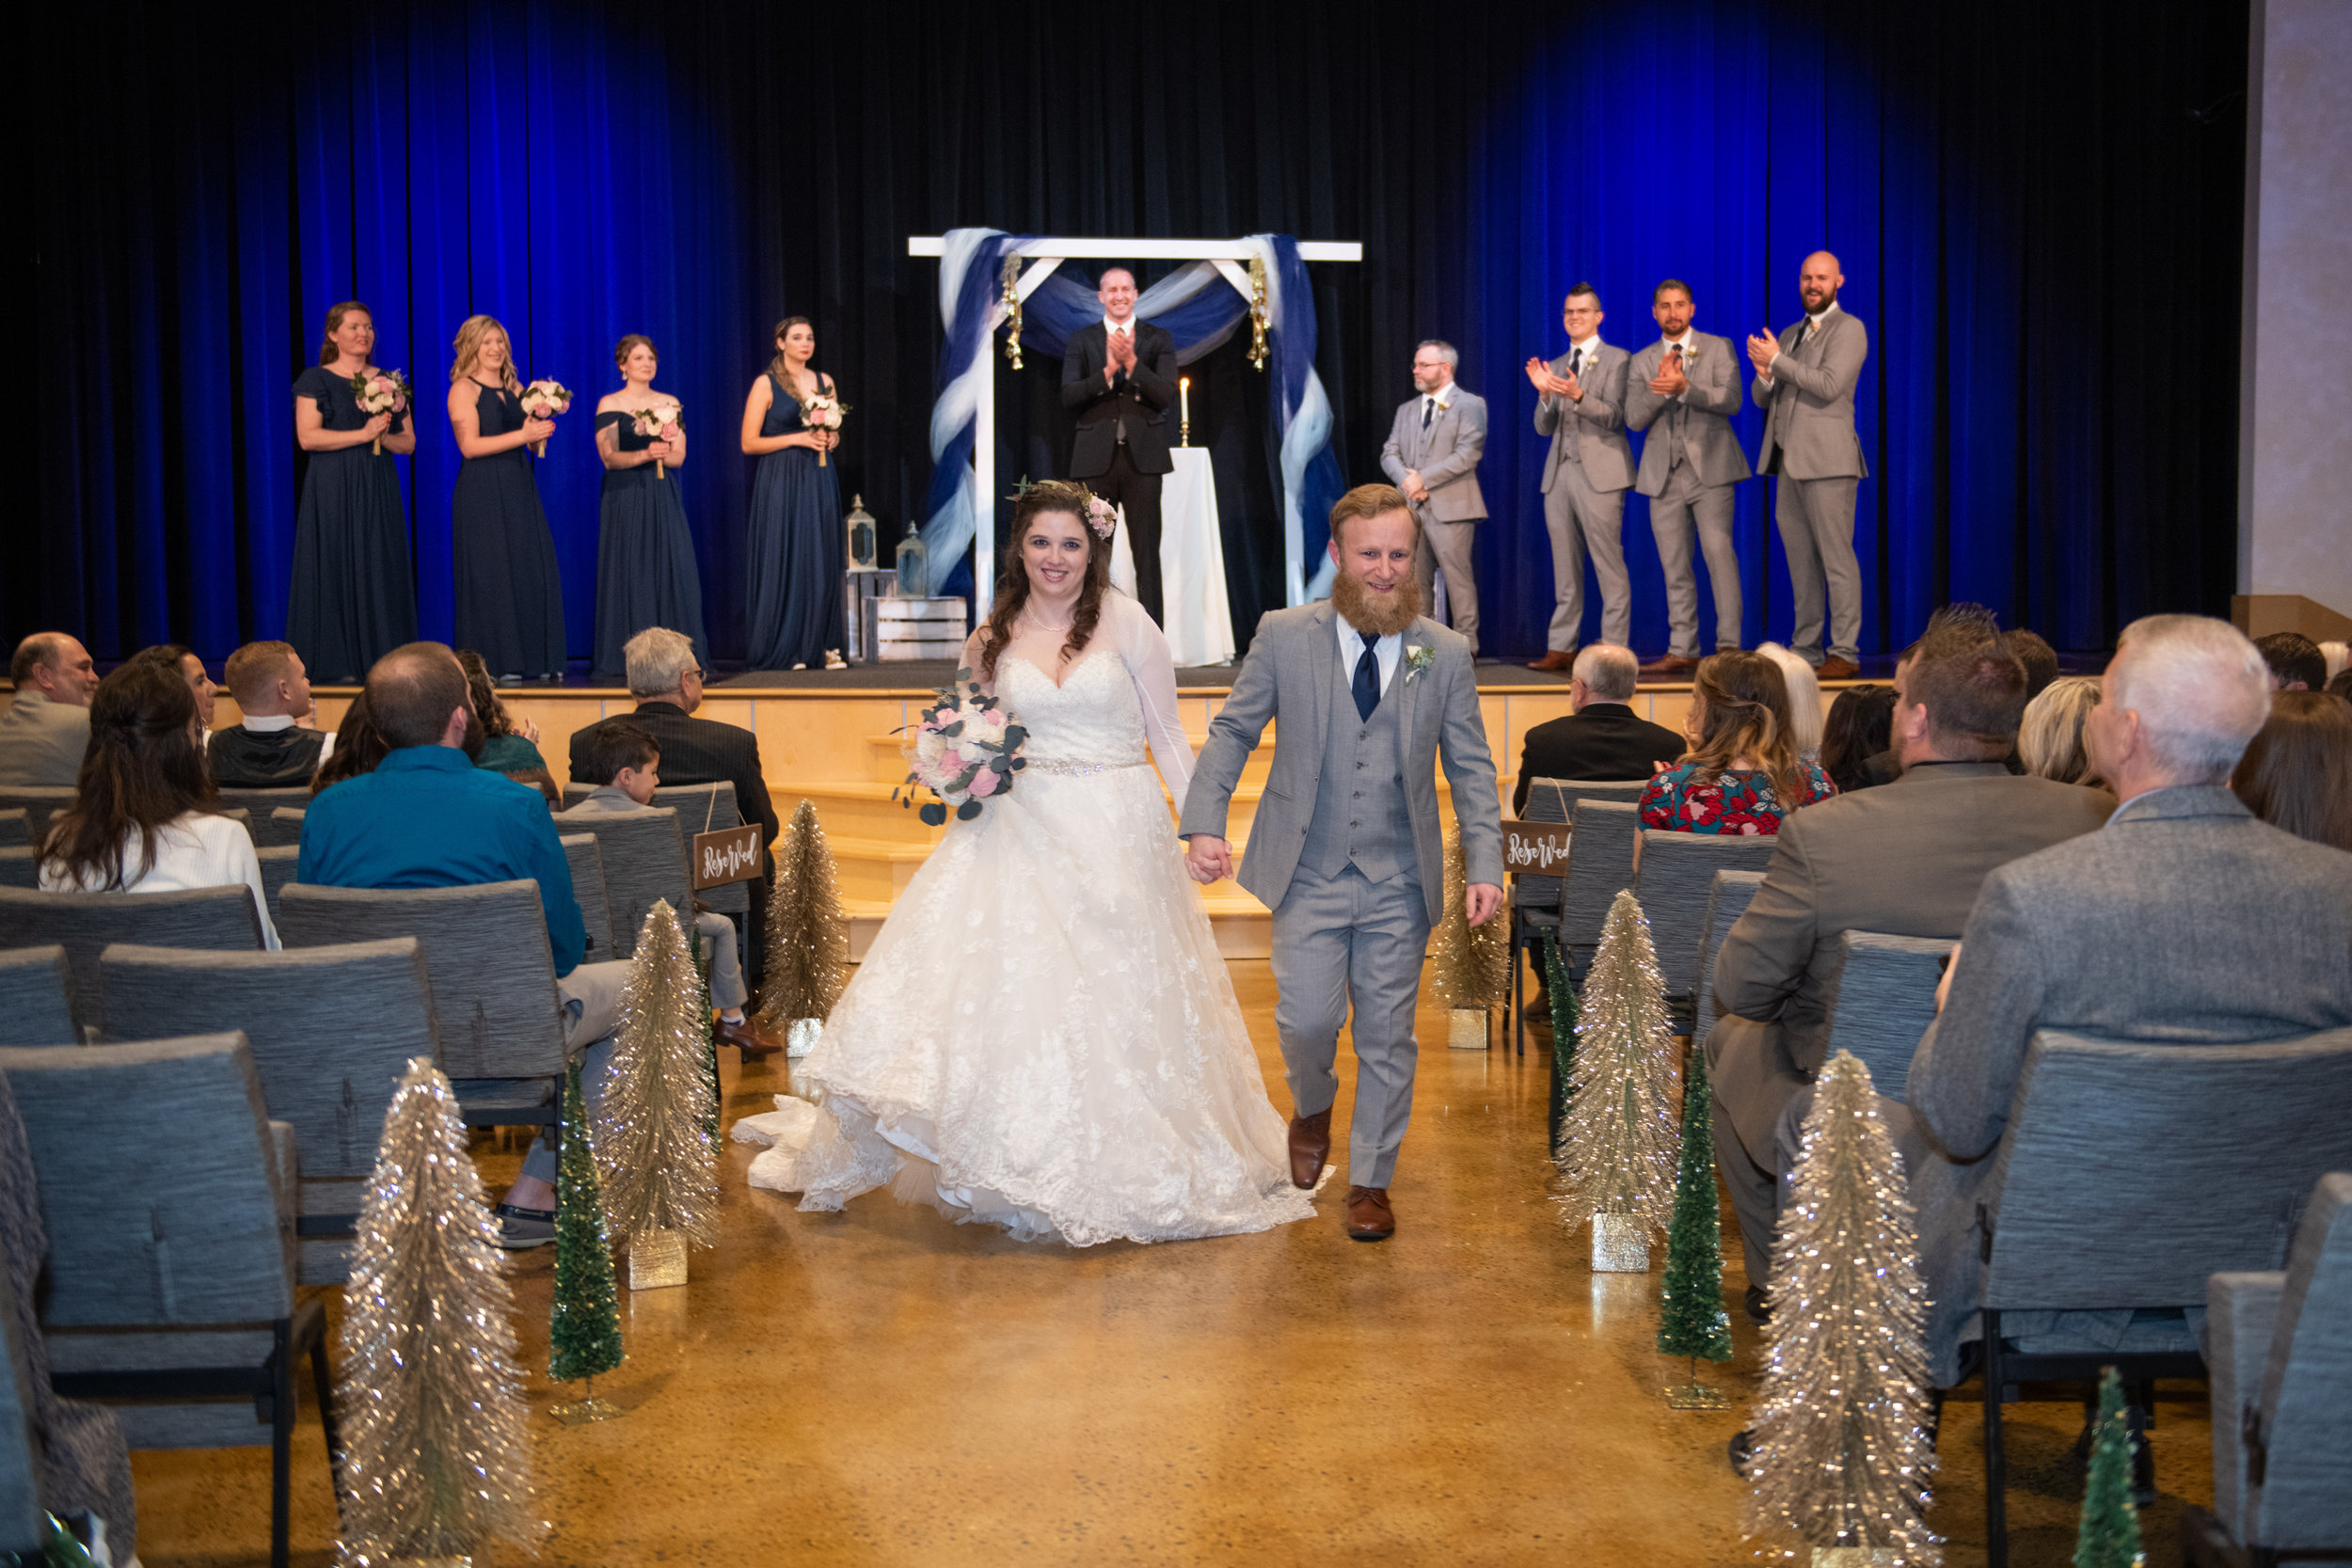 Calvary-Chapel-Chattanooga-Wedding-36.jpg